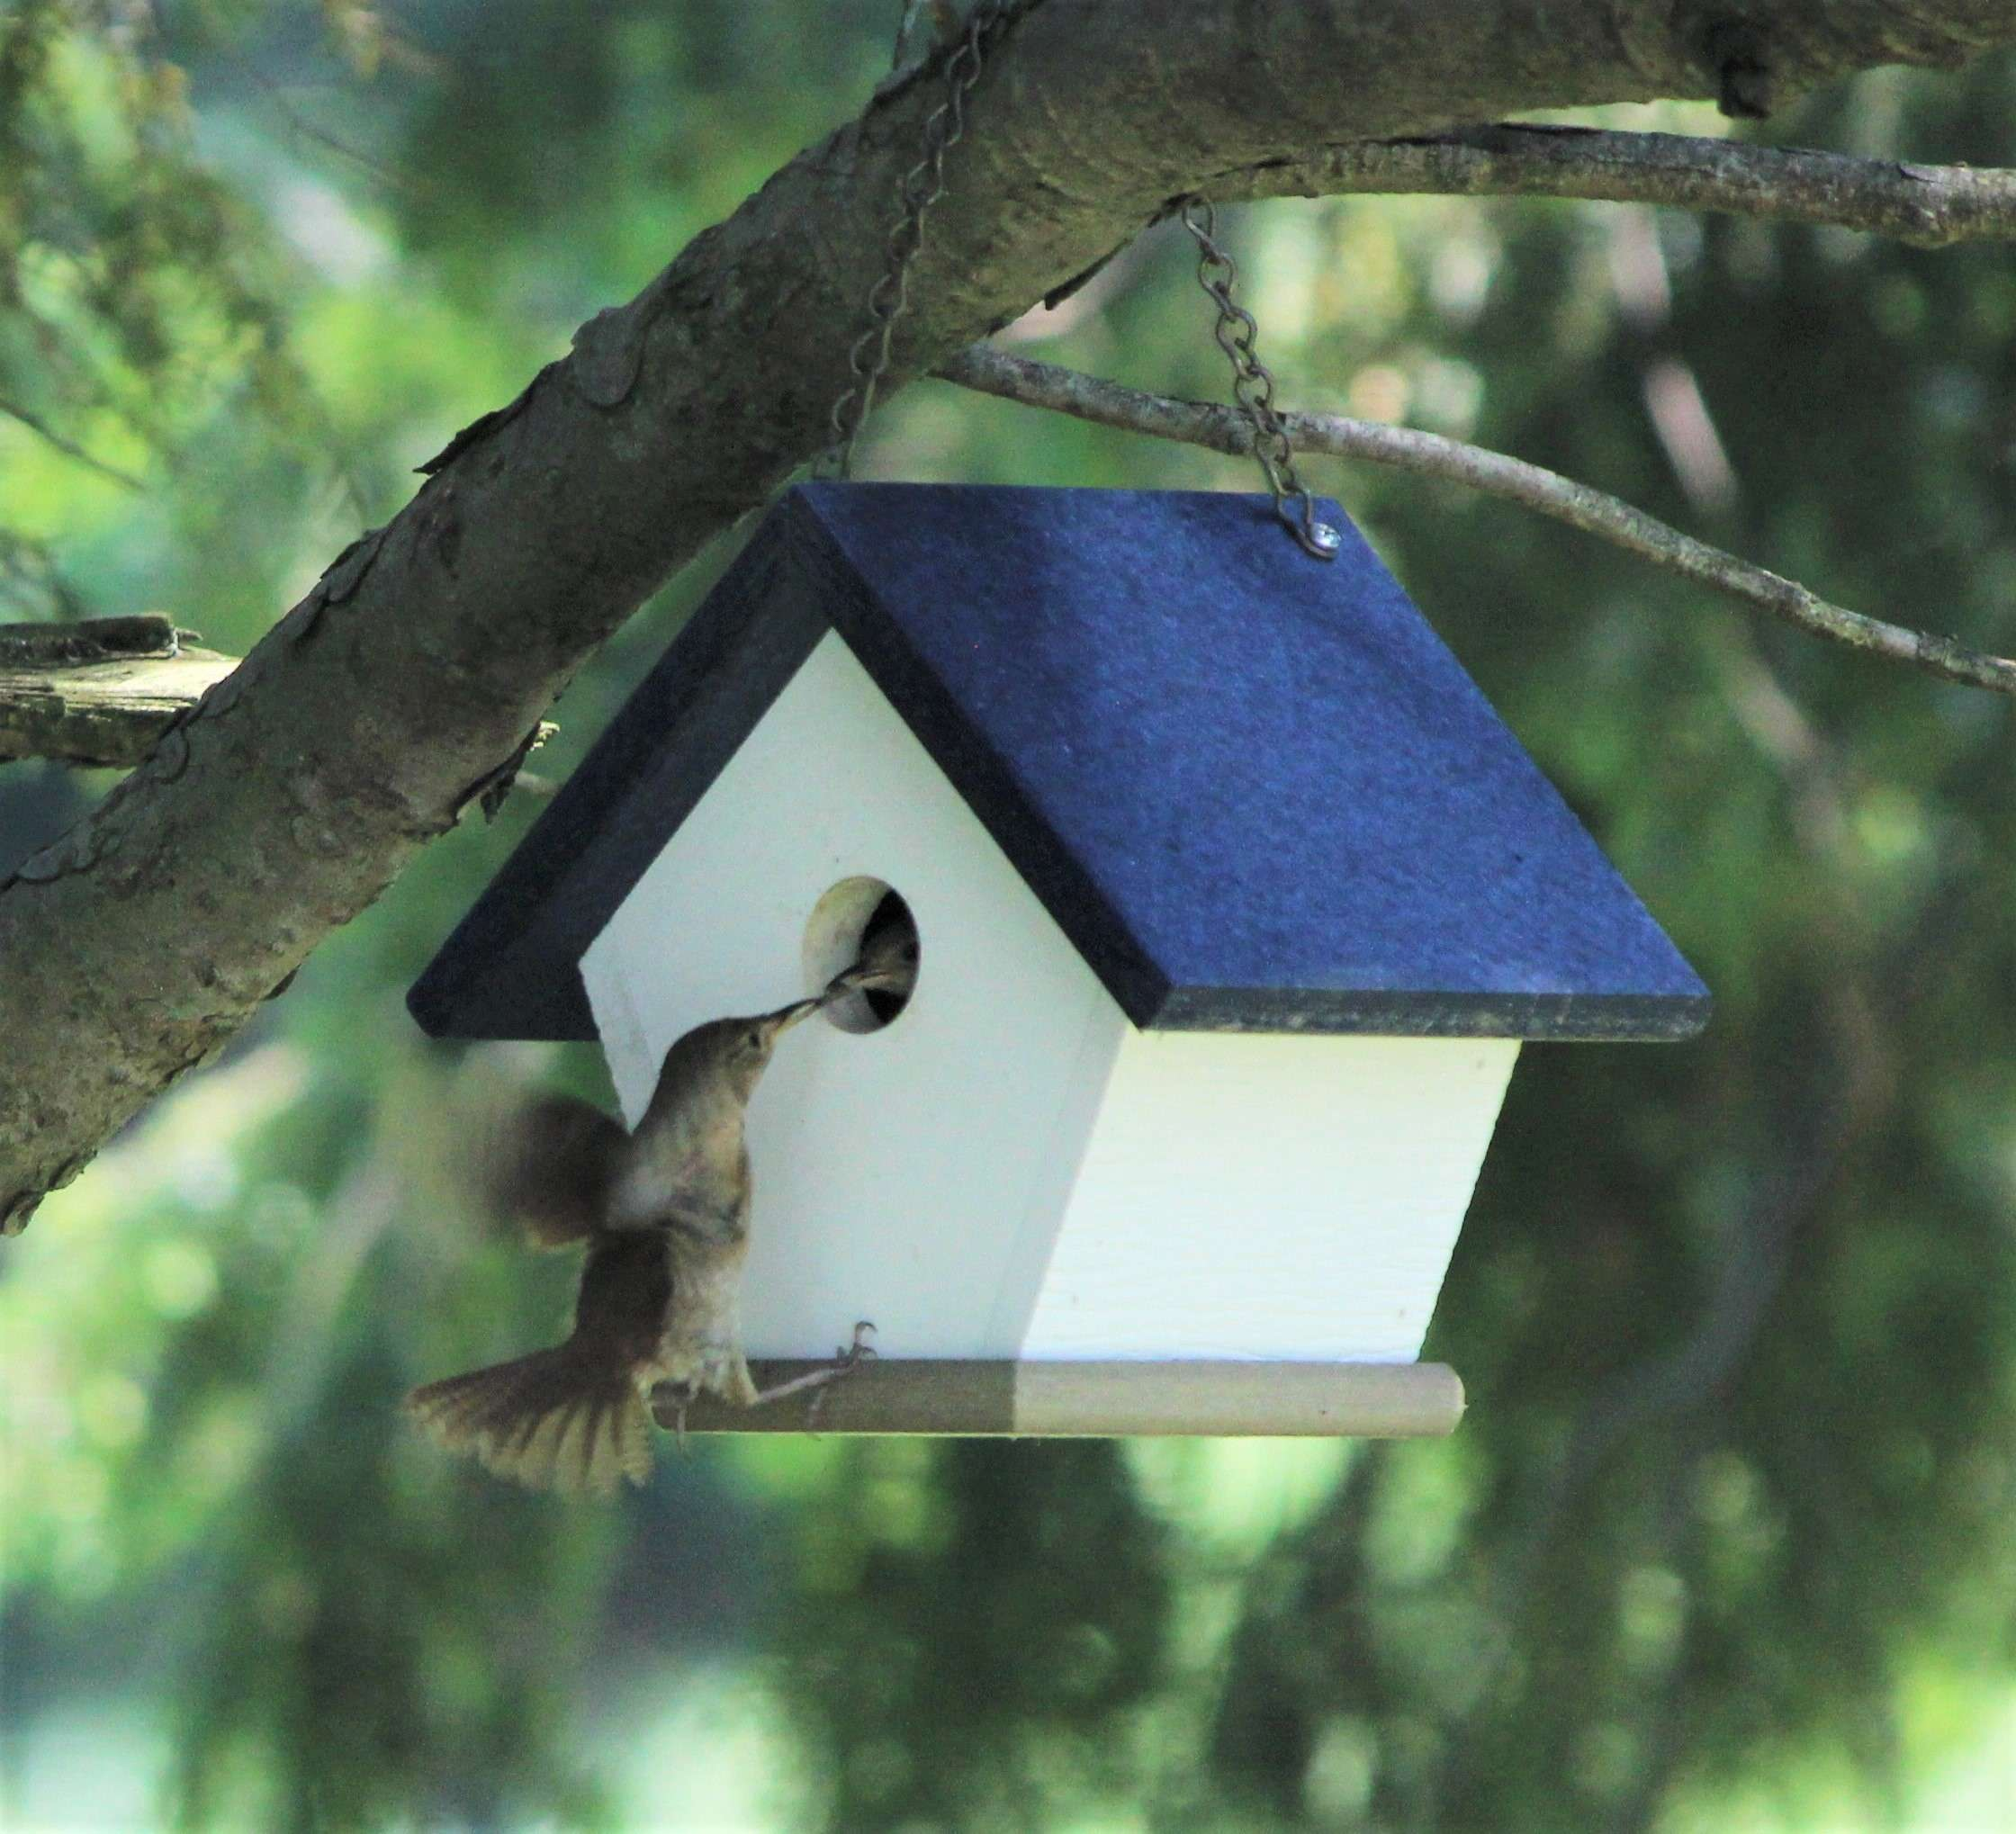 Mother wren feeding baby birds in white and navy wren house